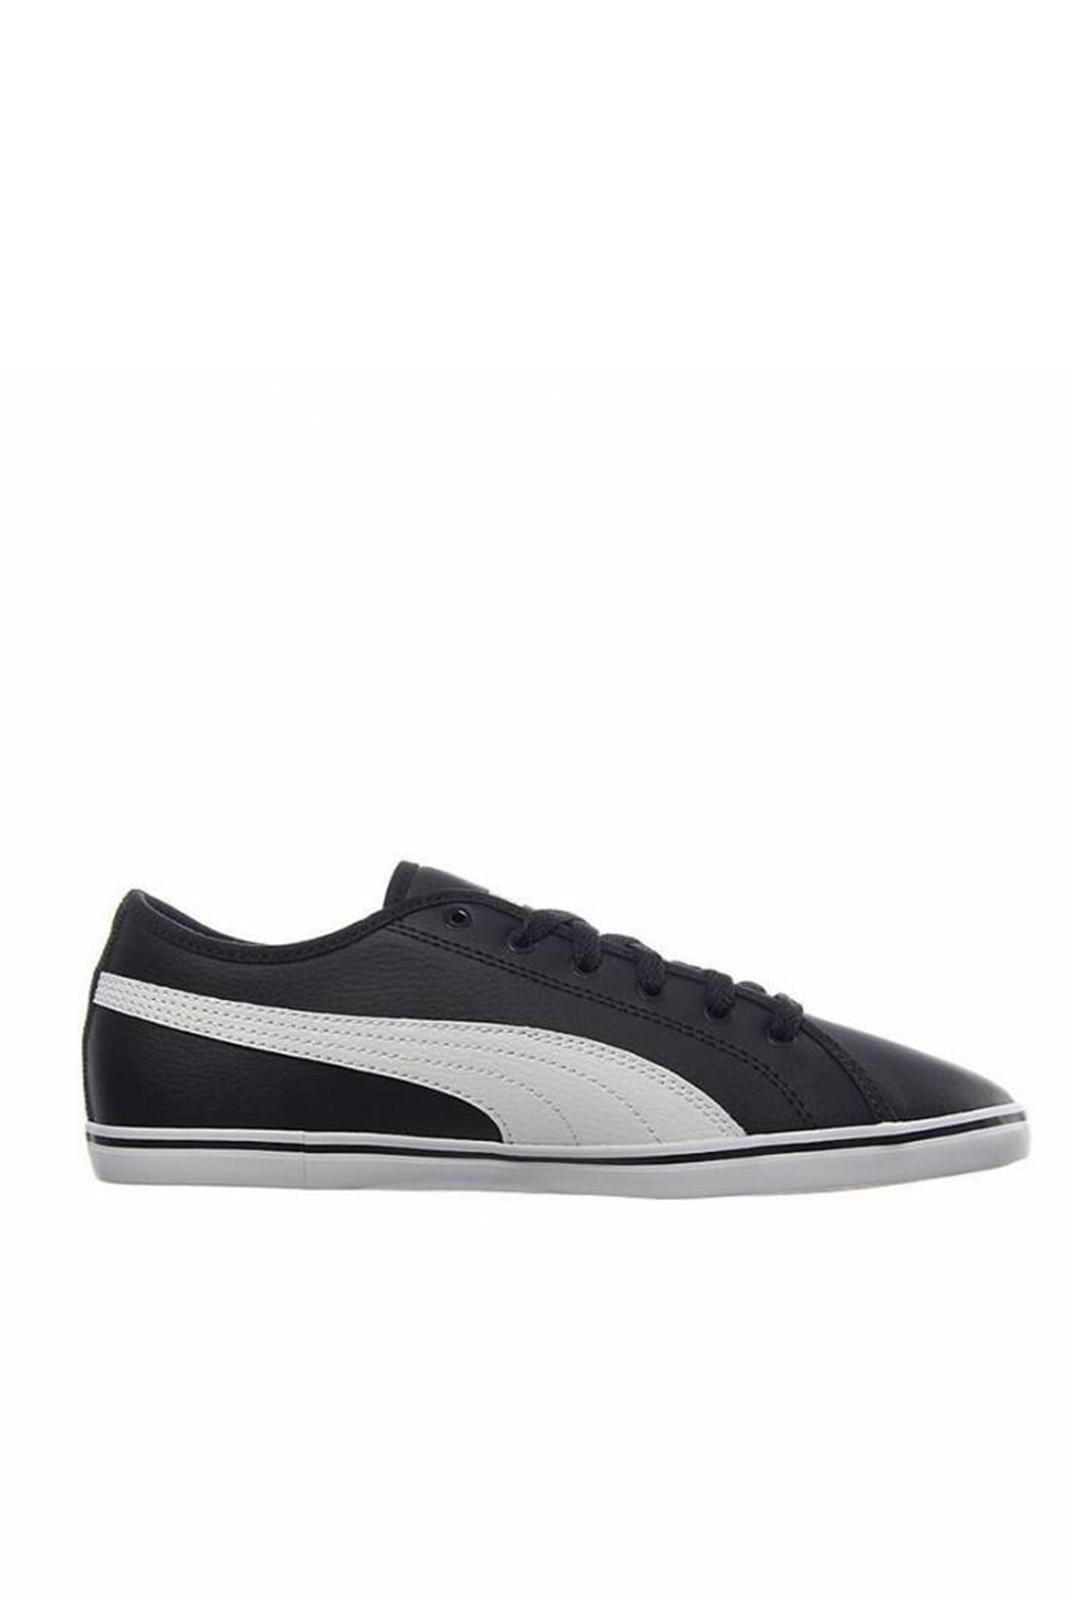 Baskets / Sneakers  Puma 359847 01 BLACK